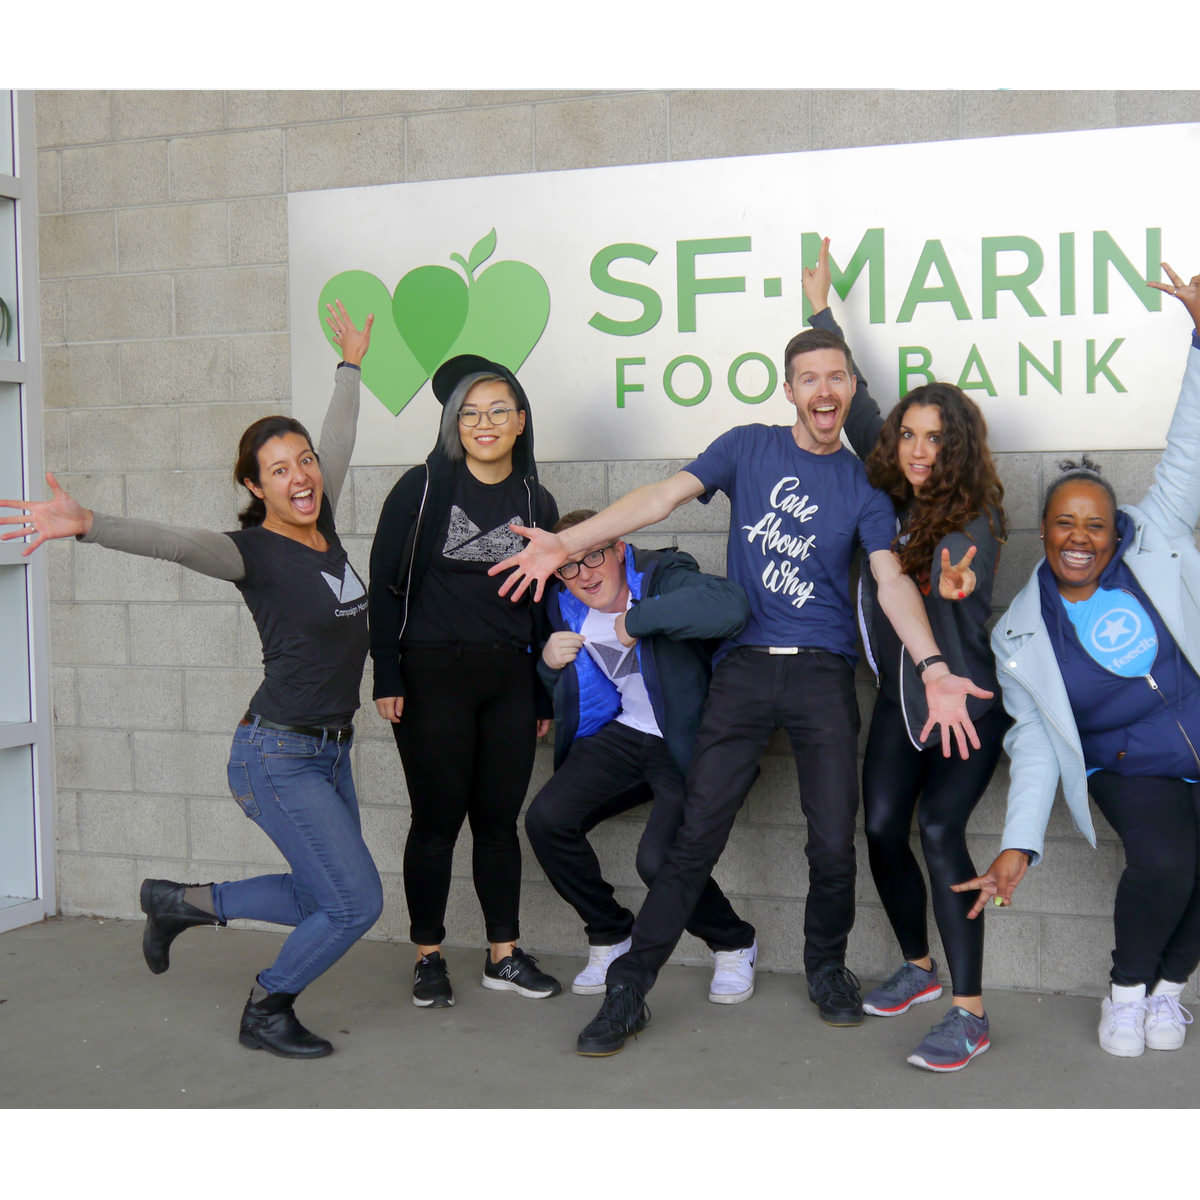 Annual Report - SF Marin Food Bank